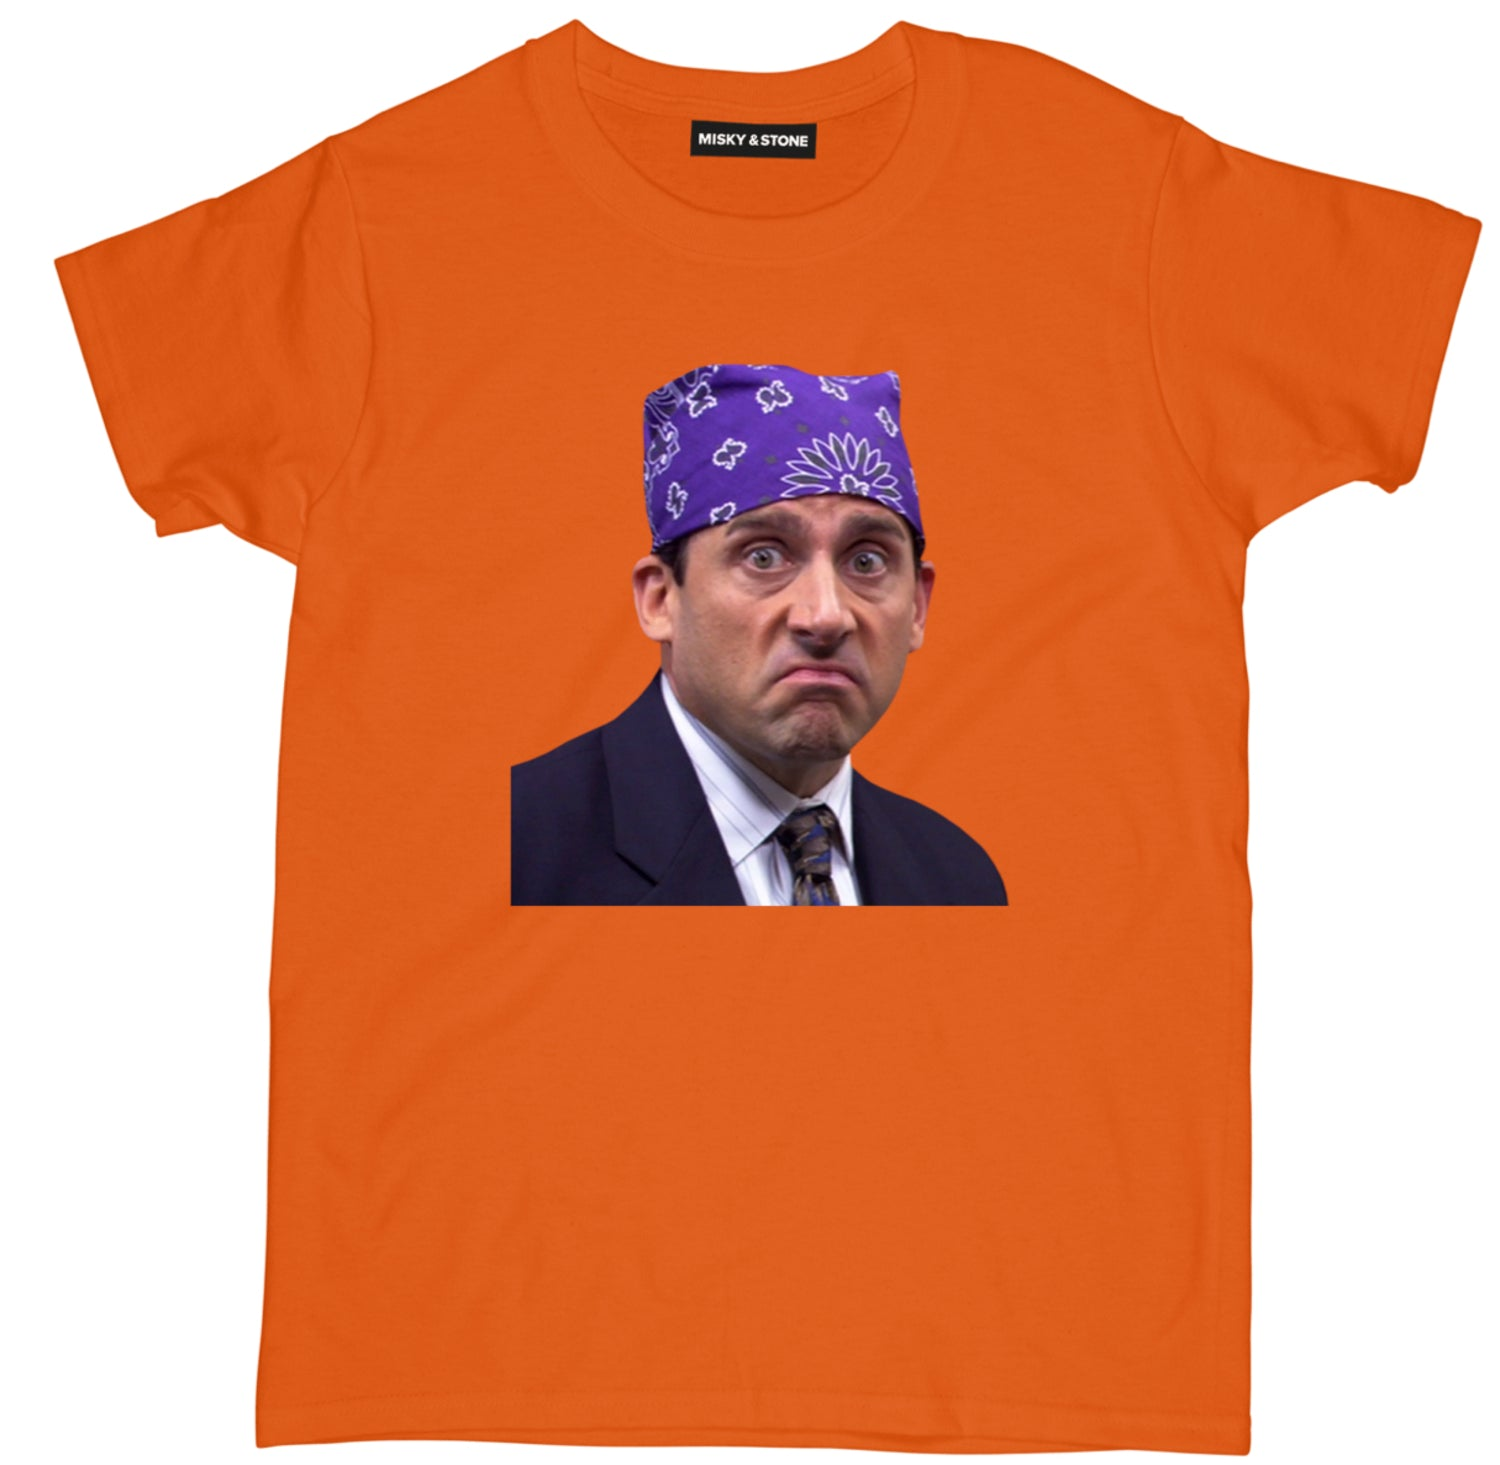 Prison Mike Womens Tshirt